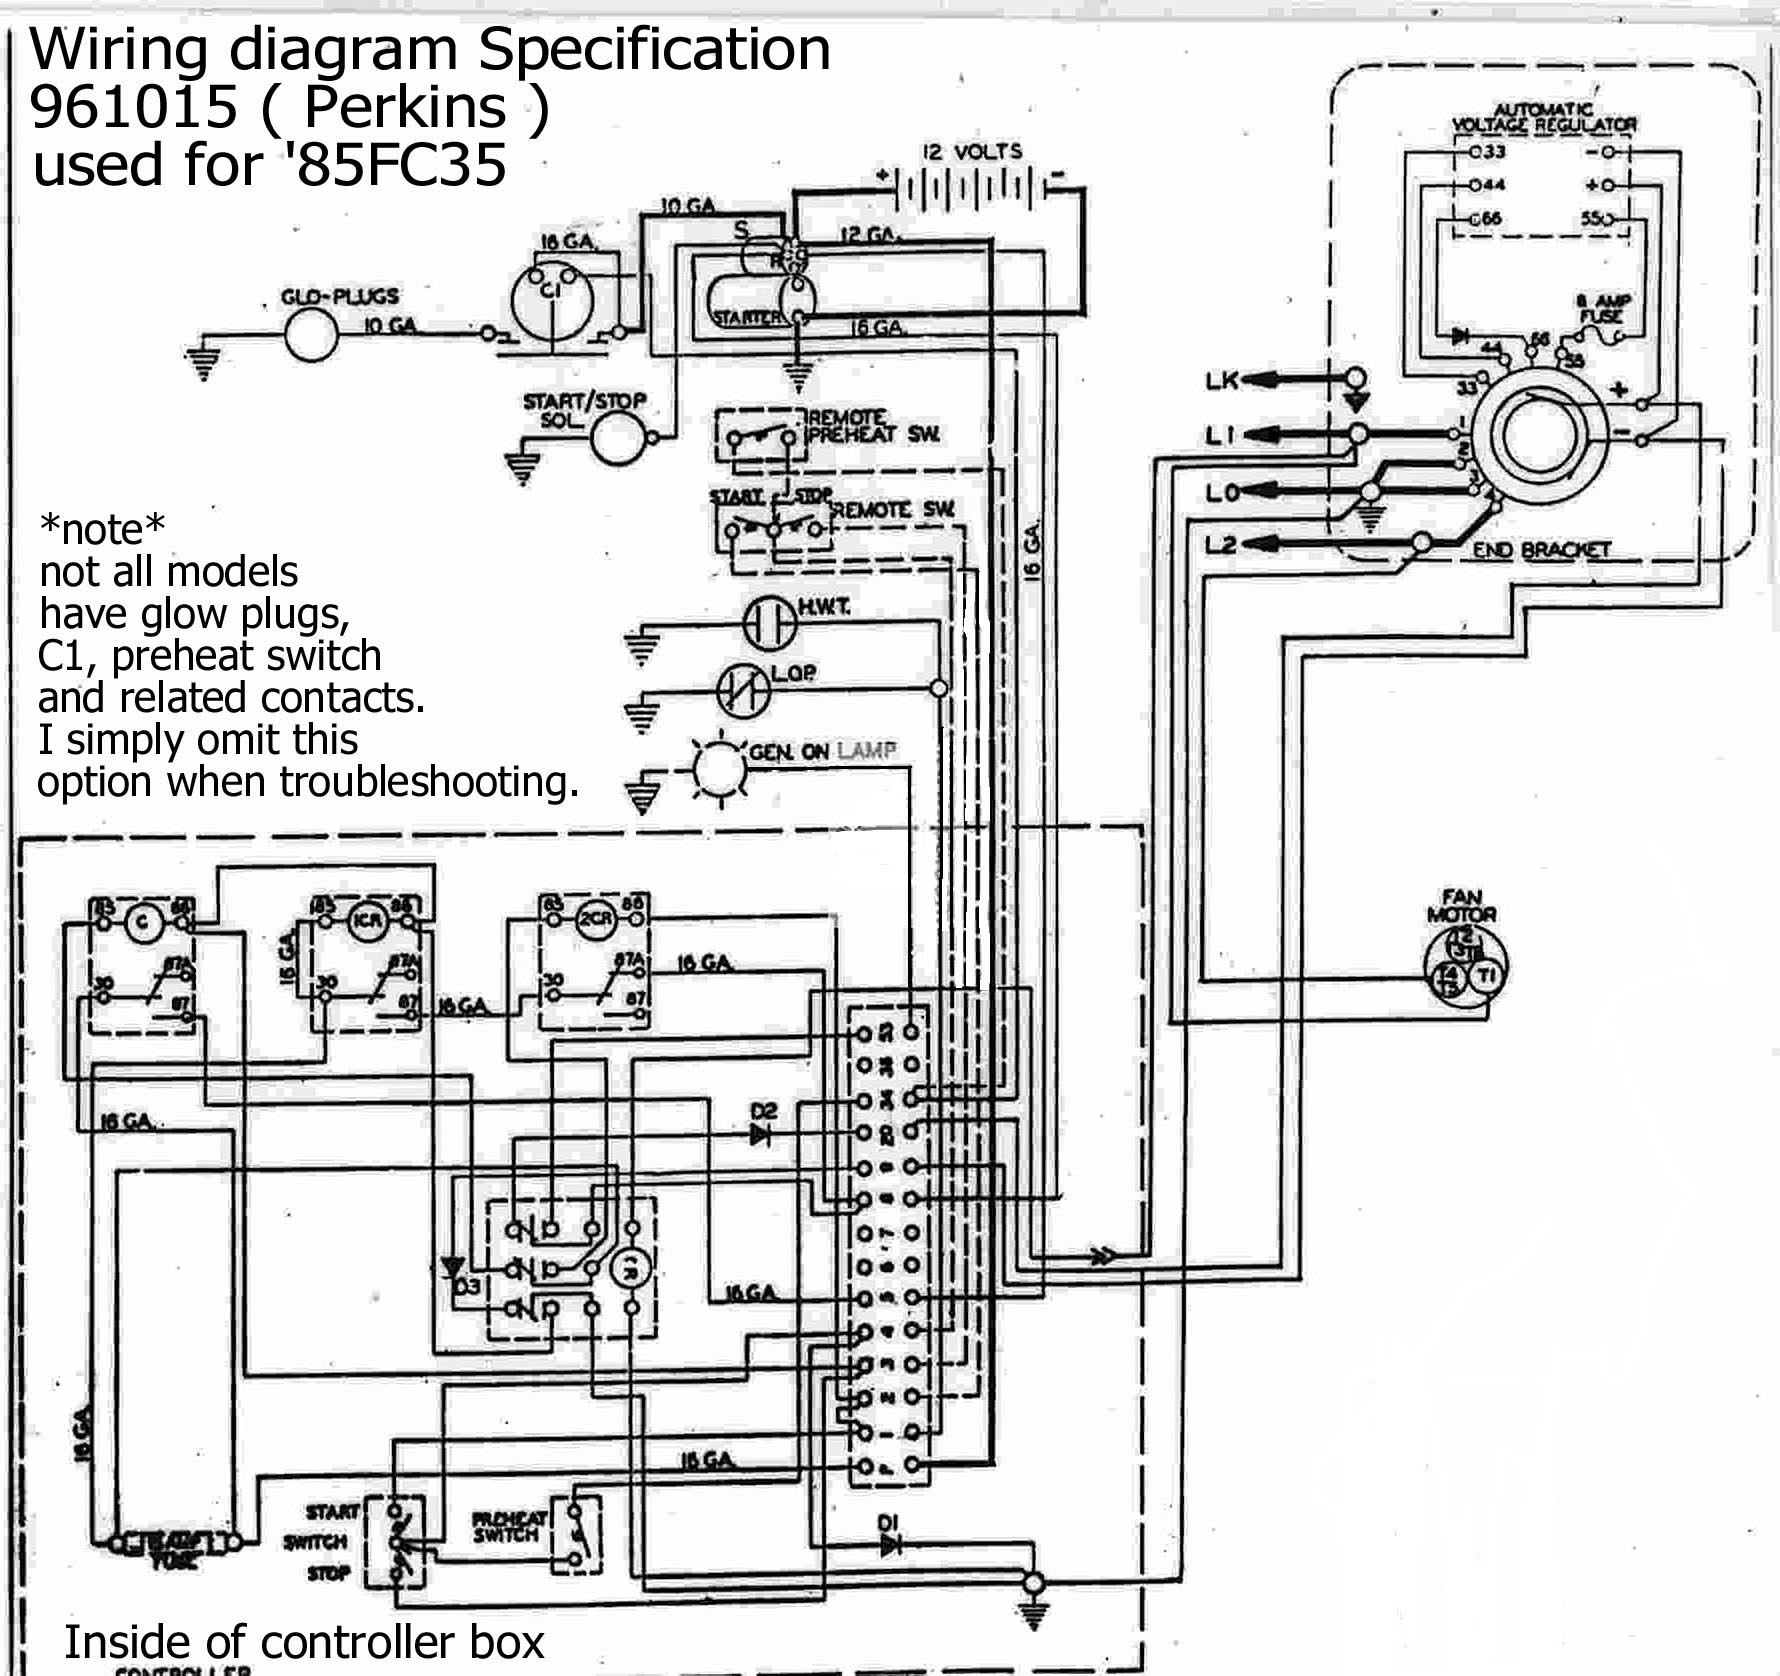 Perkins Genset Engine & Kohler Manuals and Information ... on